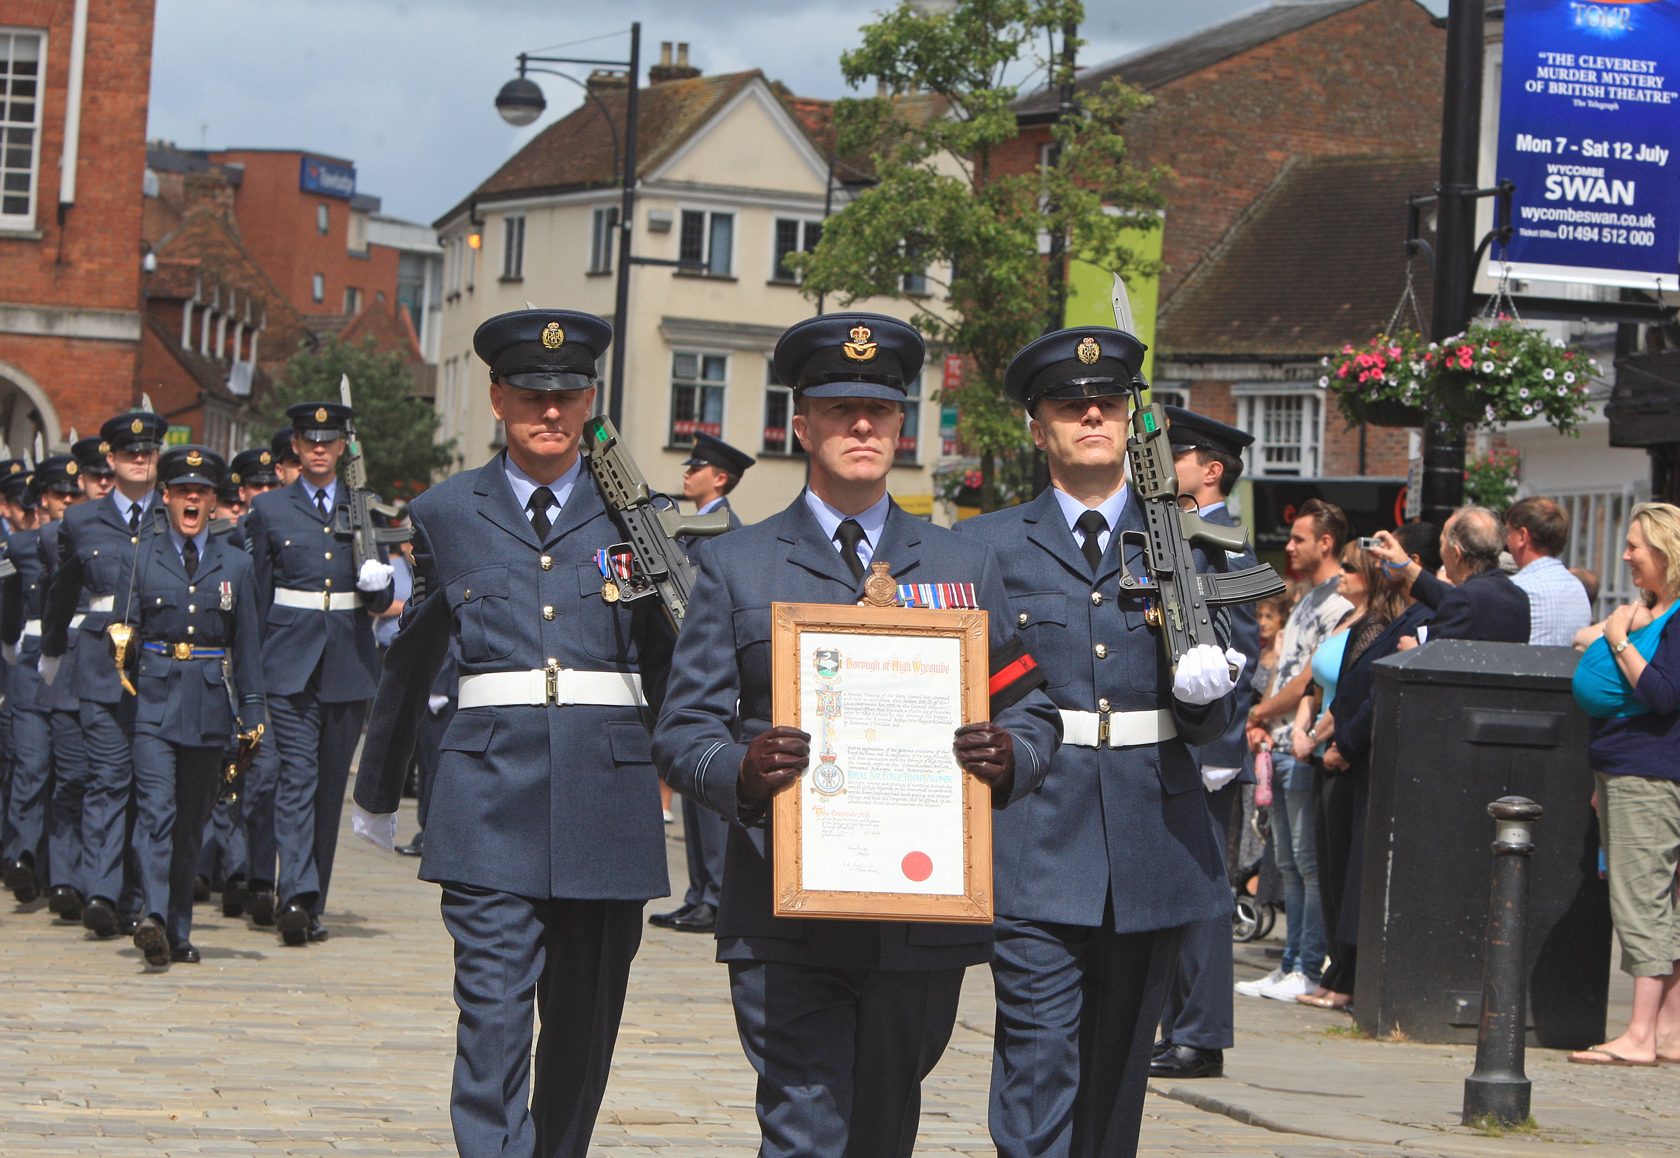 Aircraft fly-past as RAF parades through High Wycombe